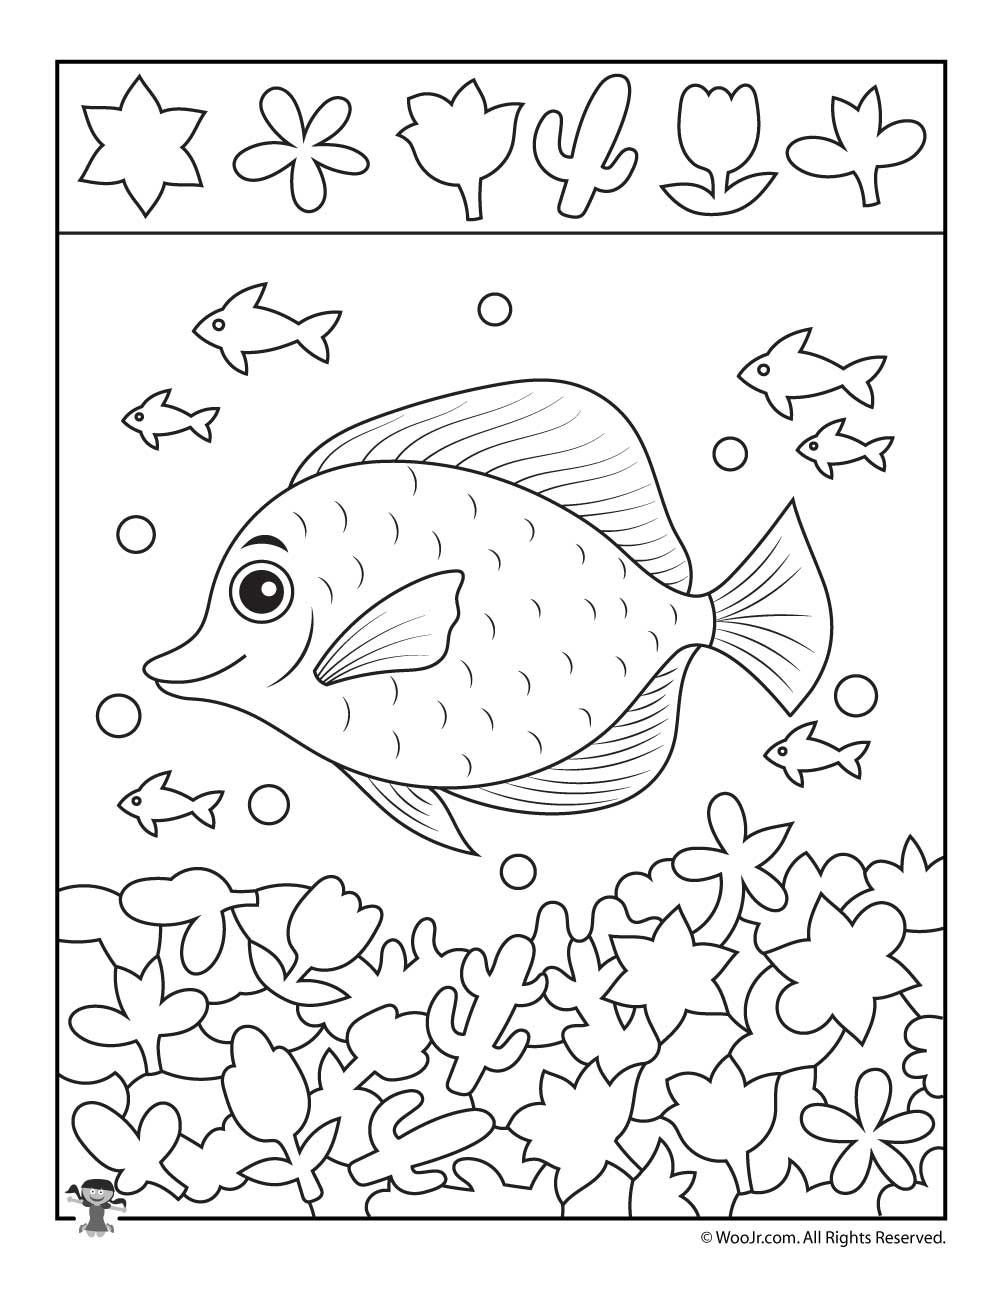 Rainbow Fish Worksheets School Of Fish Hidden Picture Printable